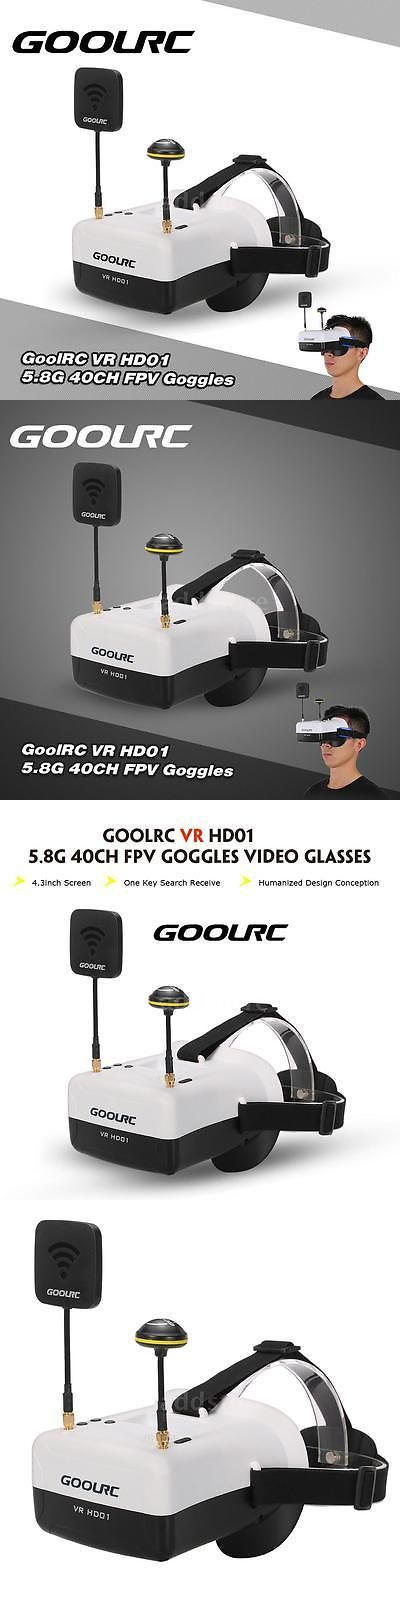 3D TV Glasses and Accessories: Goolrc Vr Hd01 5.8G 40Ch Duo Antennas Fpv Goggles Video Glasses B3h3 -> BUY IT NOW ONLY: $52.44 on eBay!